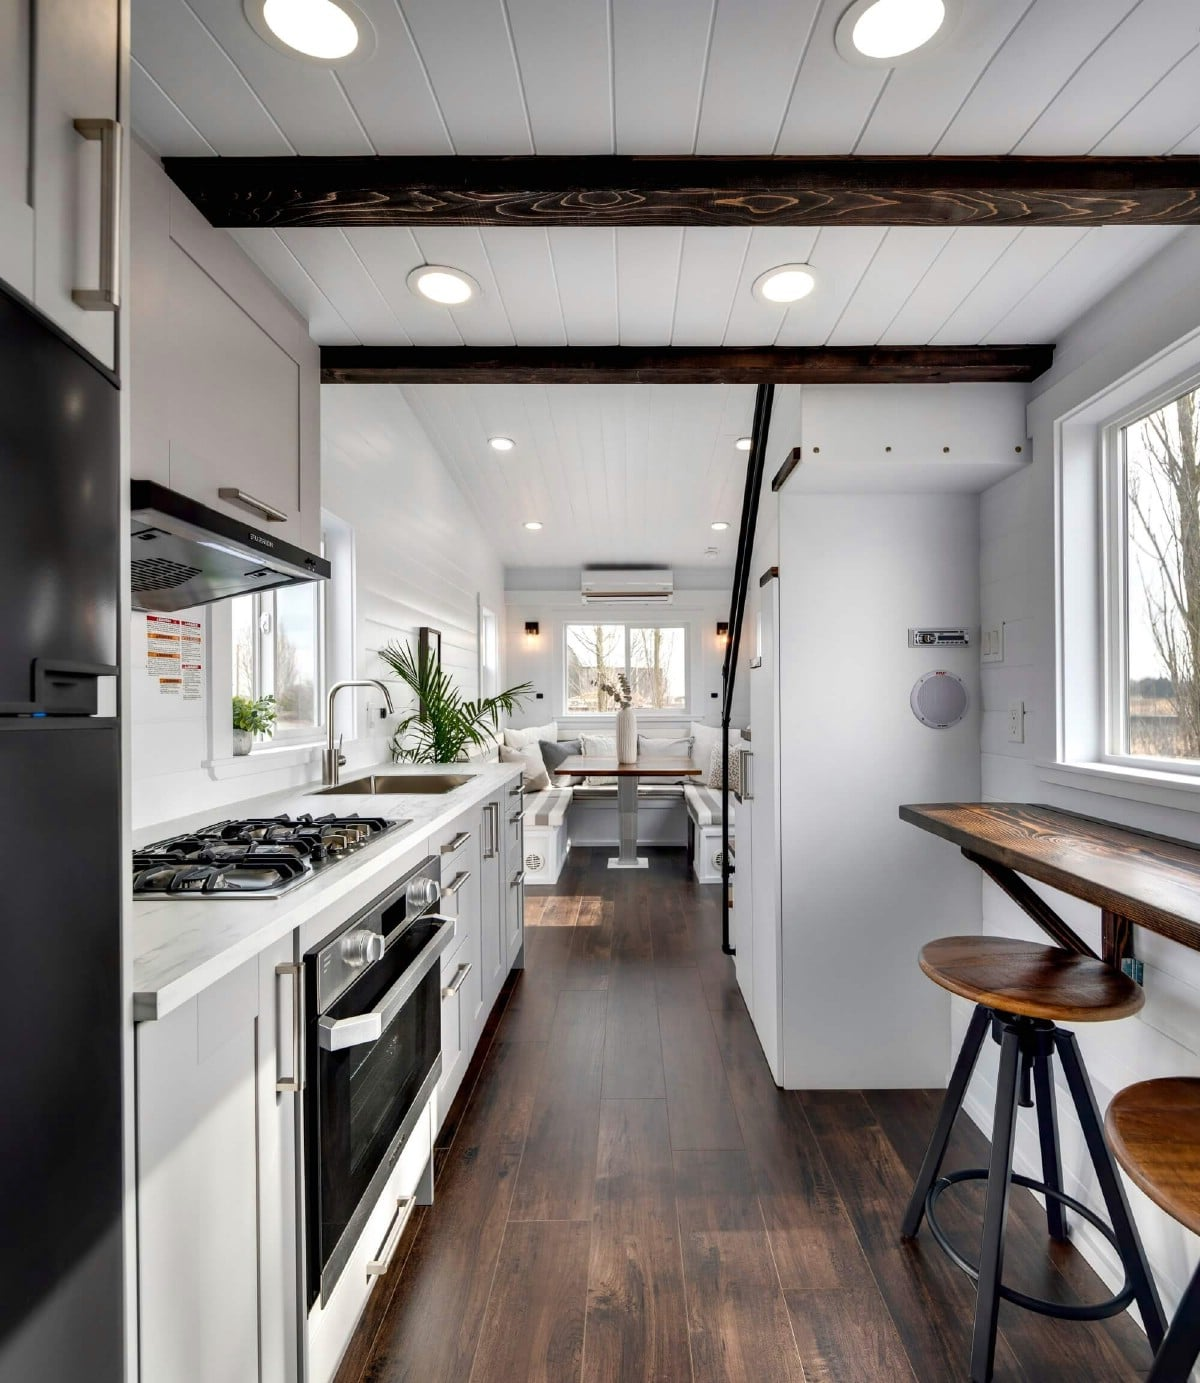 View from kitchen into living area of tiny home